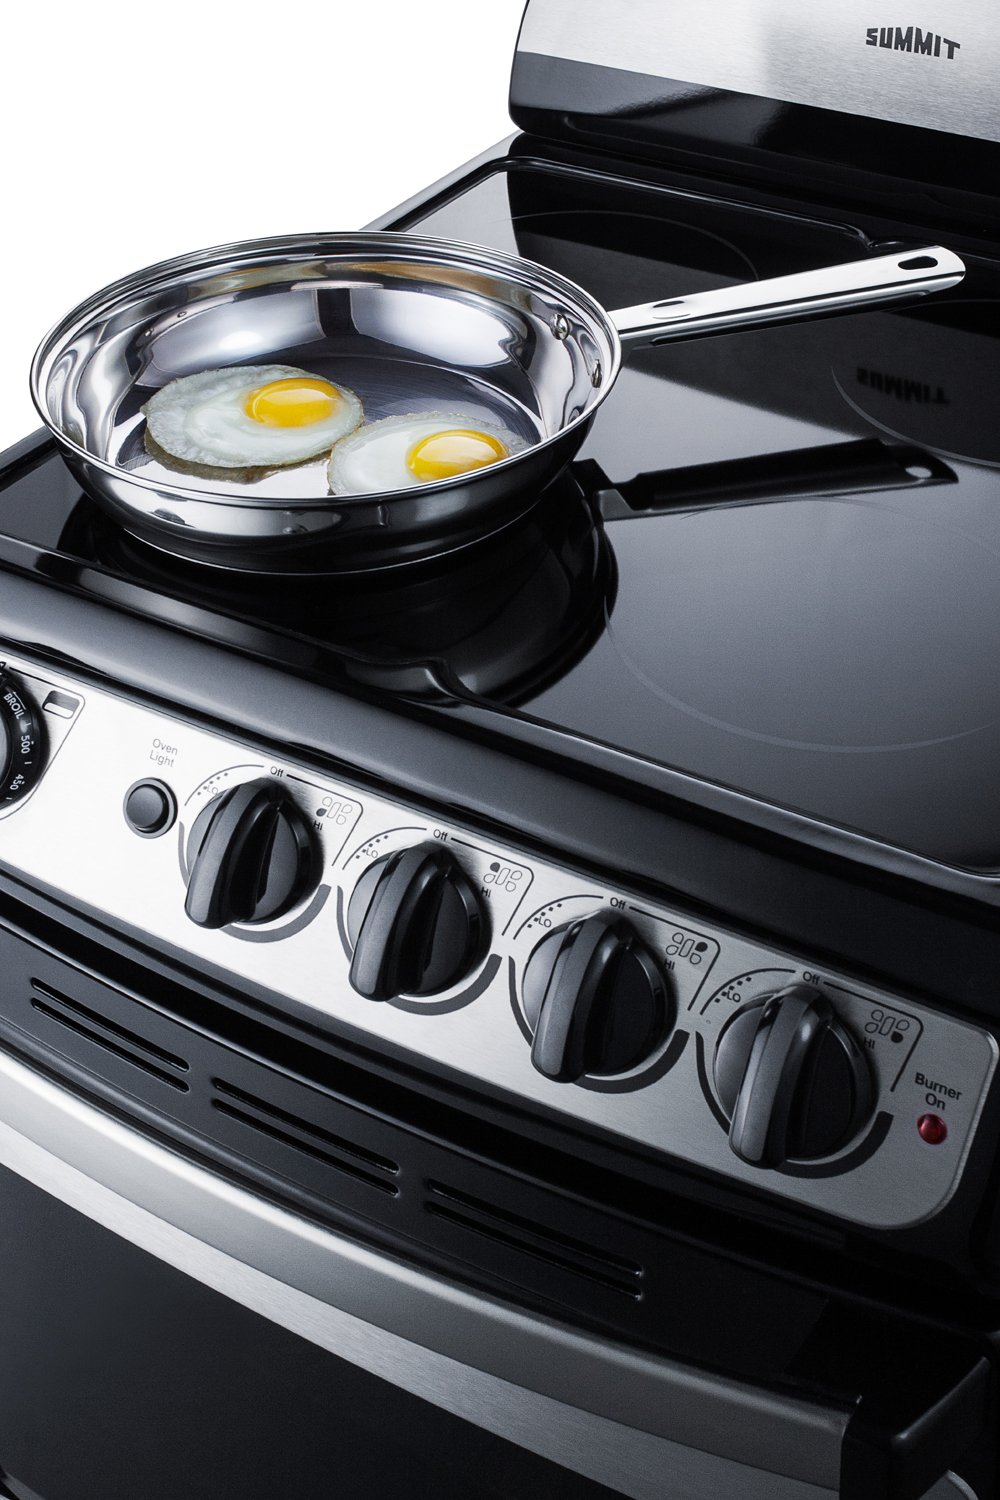 Summit FBA REX207SS White Pearl 20 Electric Range with Ceramic Glass Cooktop Stainless-Steel Exterior Large Oven Window